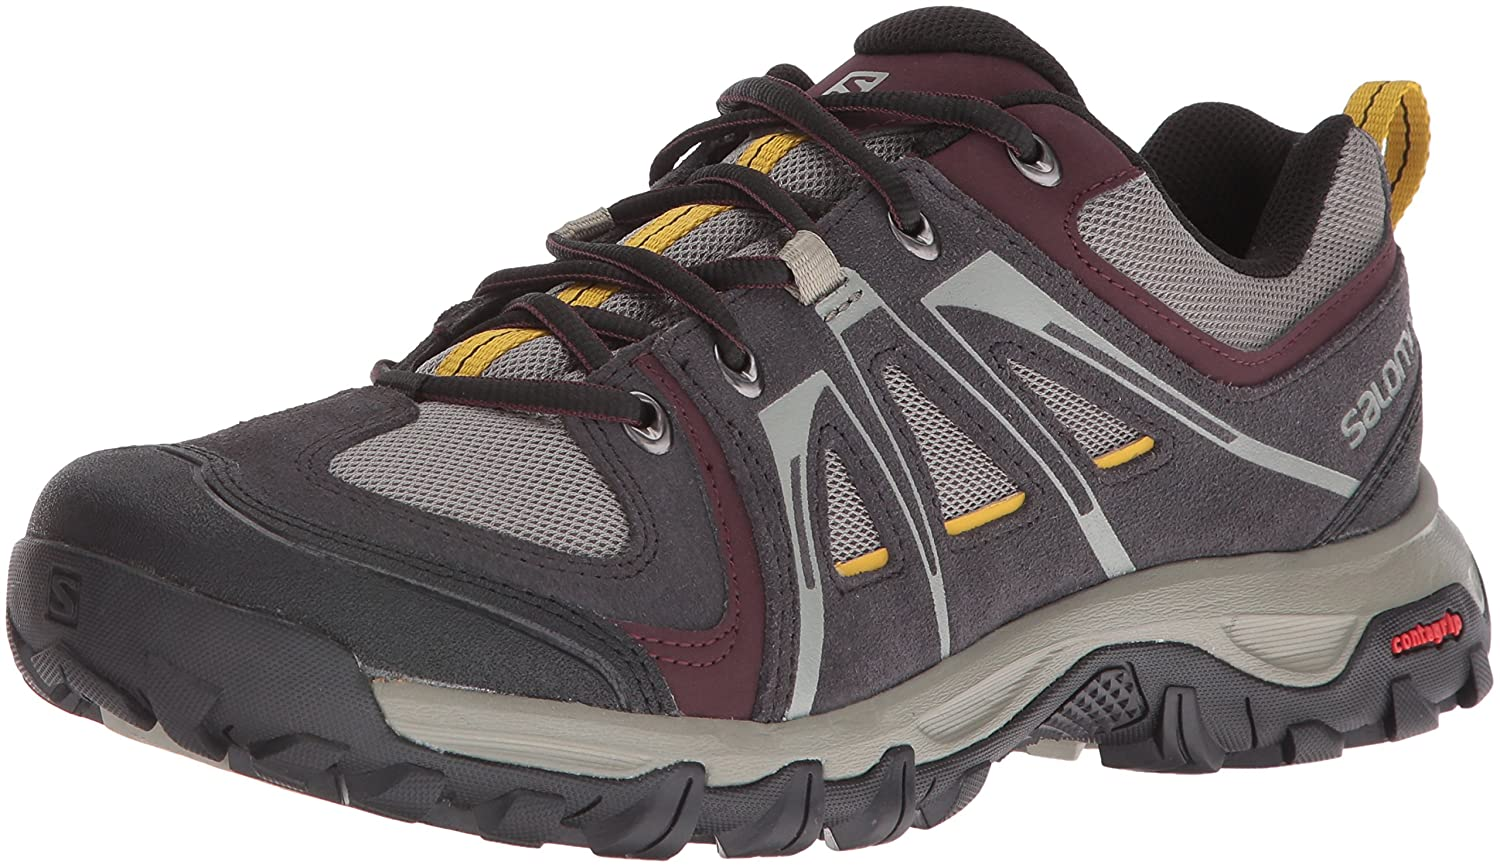 53c740c9056 Salomon Men's Evasion Aero Hiking Shoe